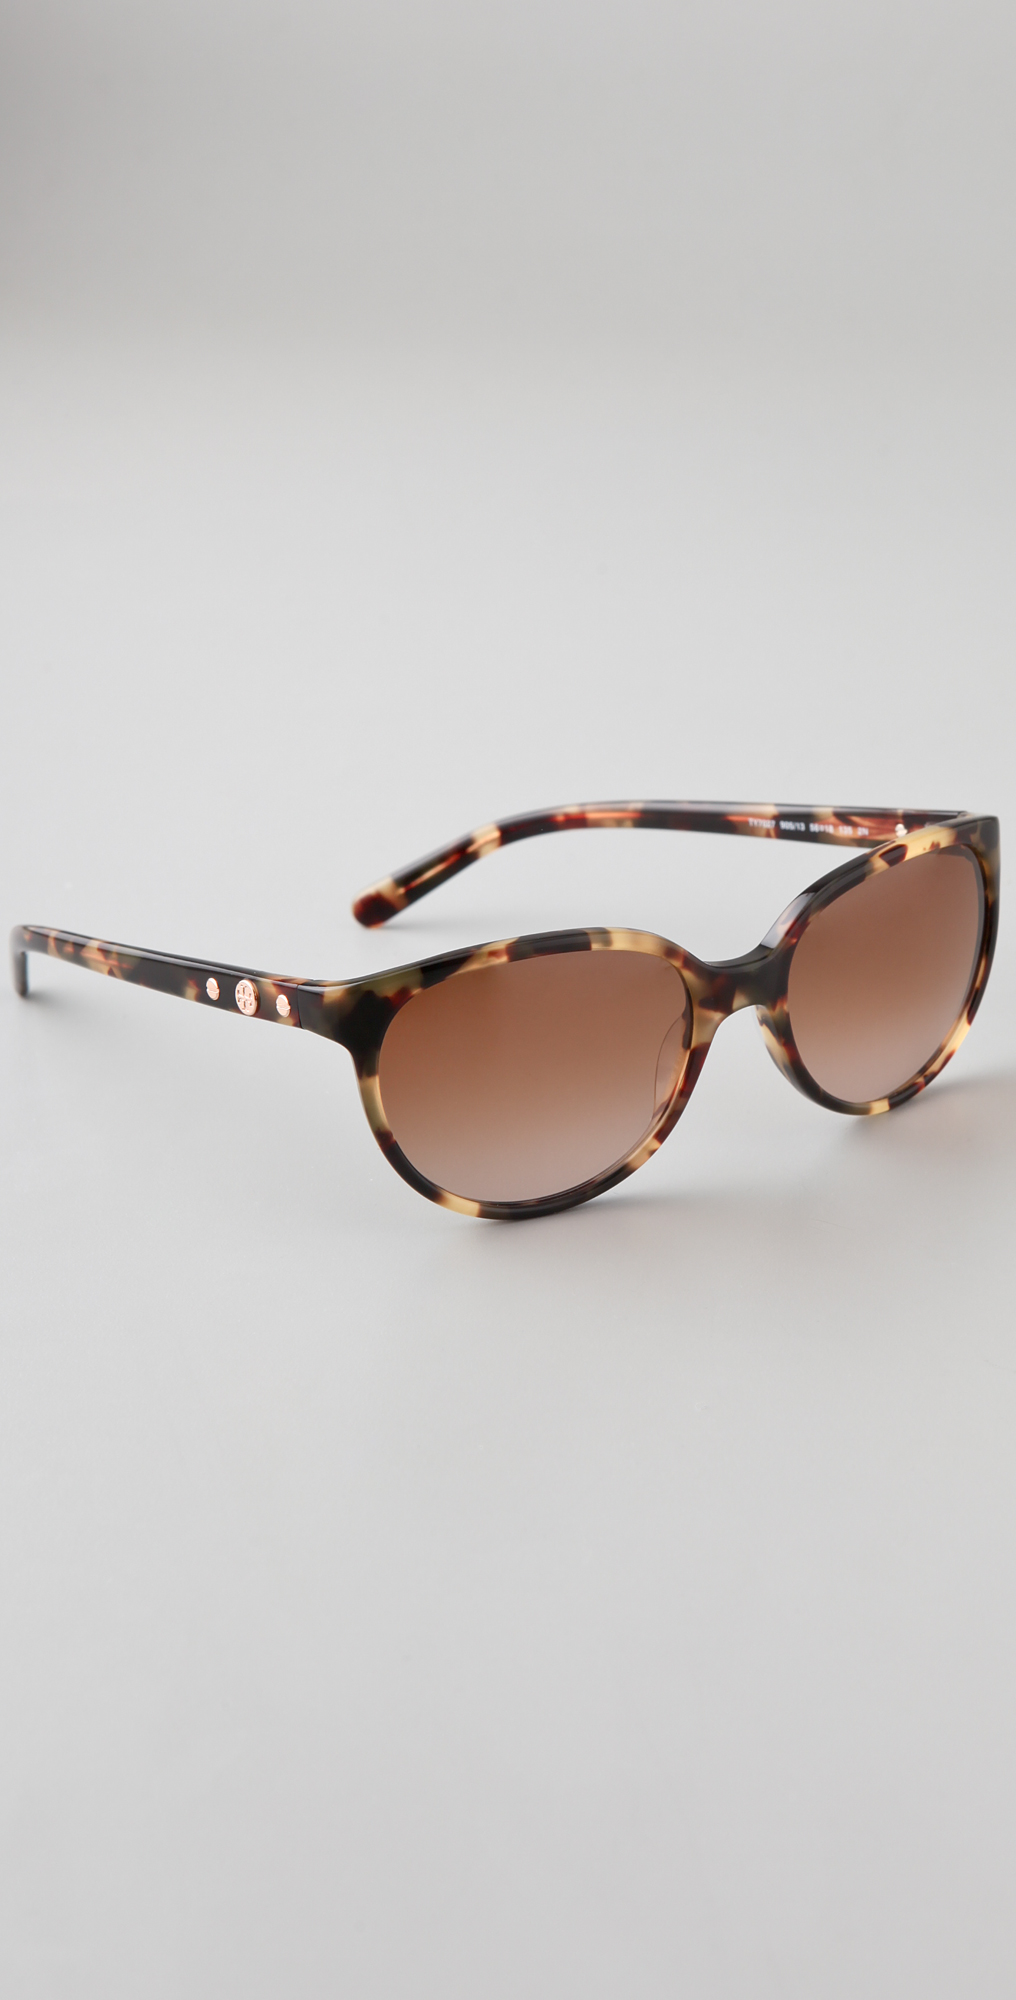 936fa4060638 Tory Burch Oversized Sunglasses on PopScreen